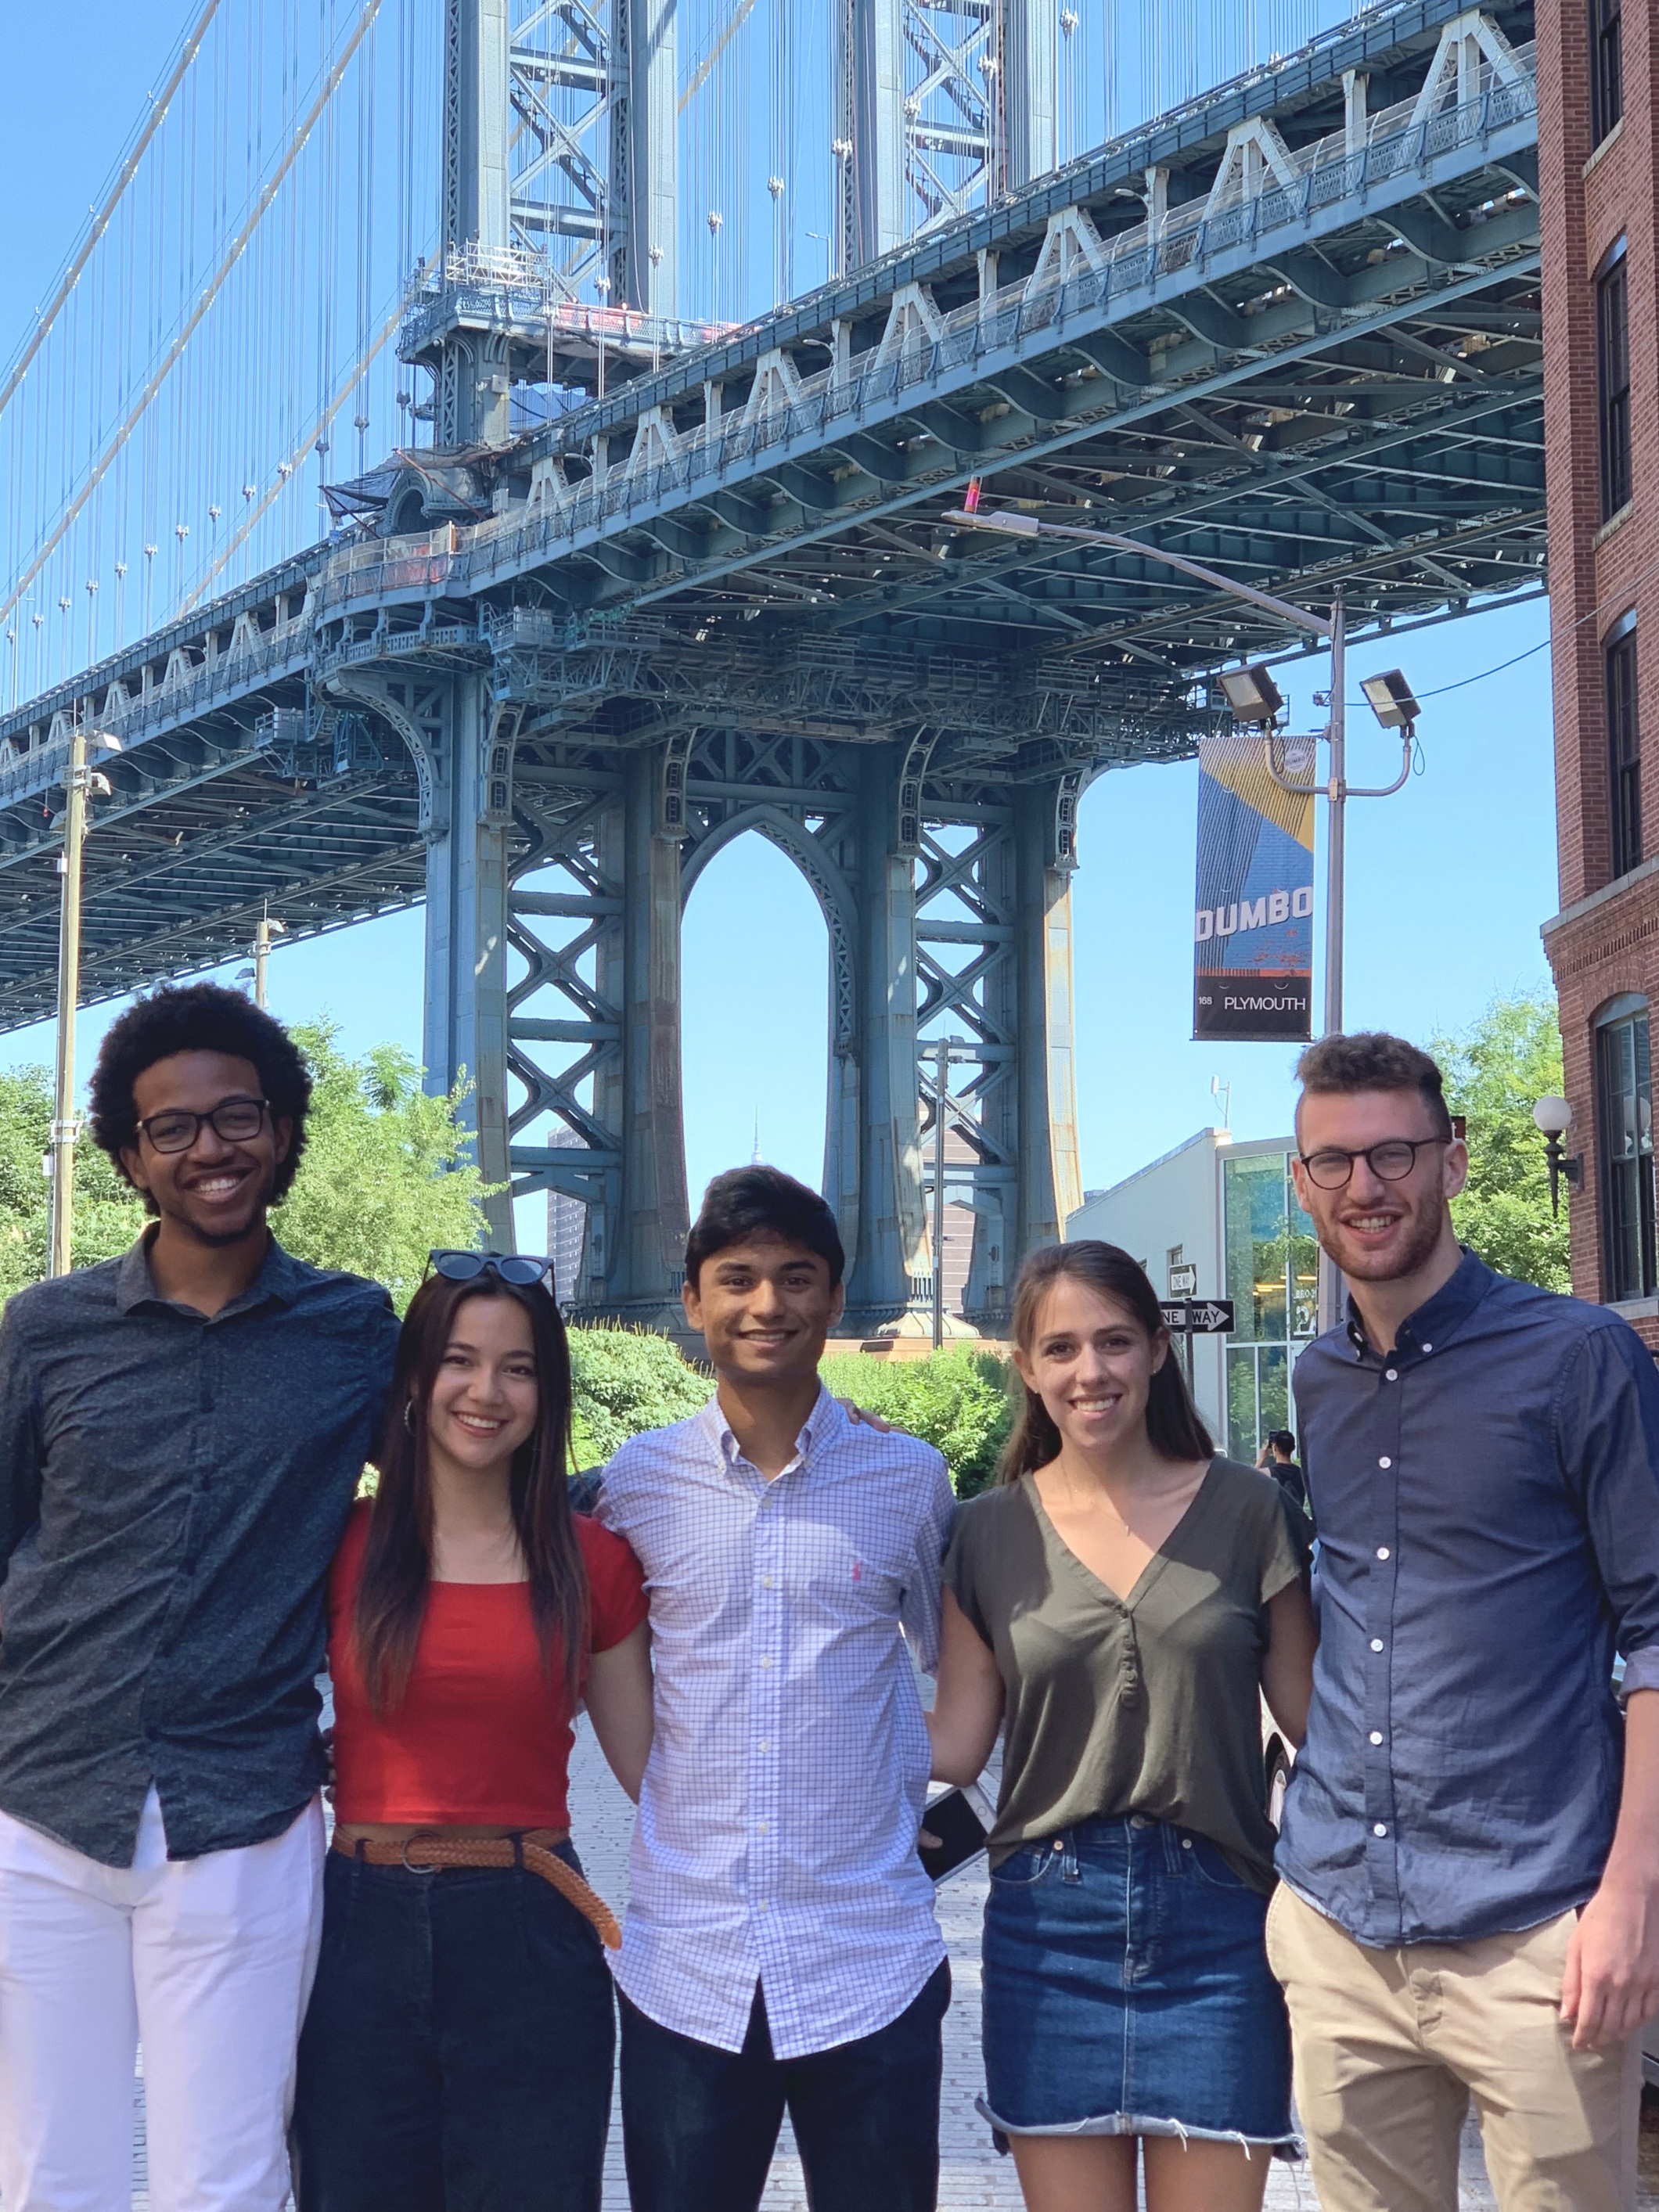 The 2019 TurboVote Summer Associates, from left to right: Michael, Ella, Akshay, Deanna, and Sam.